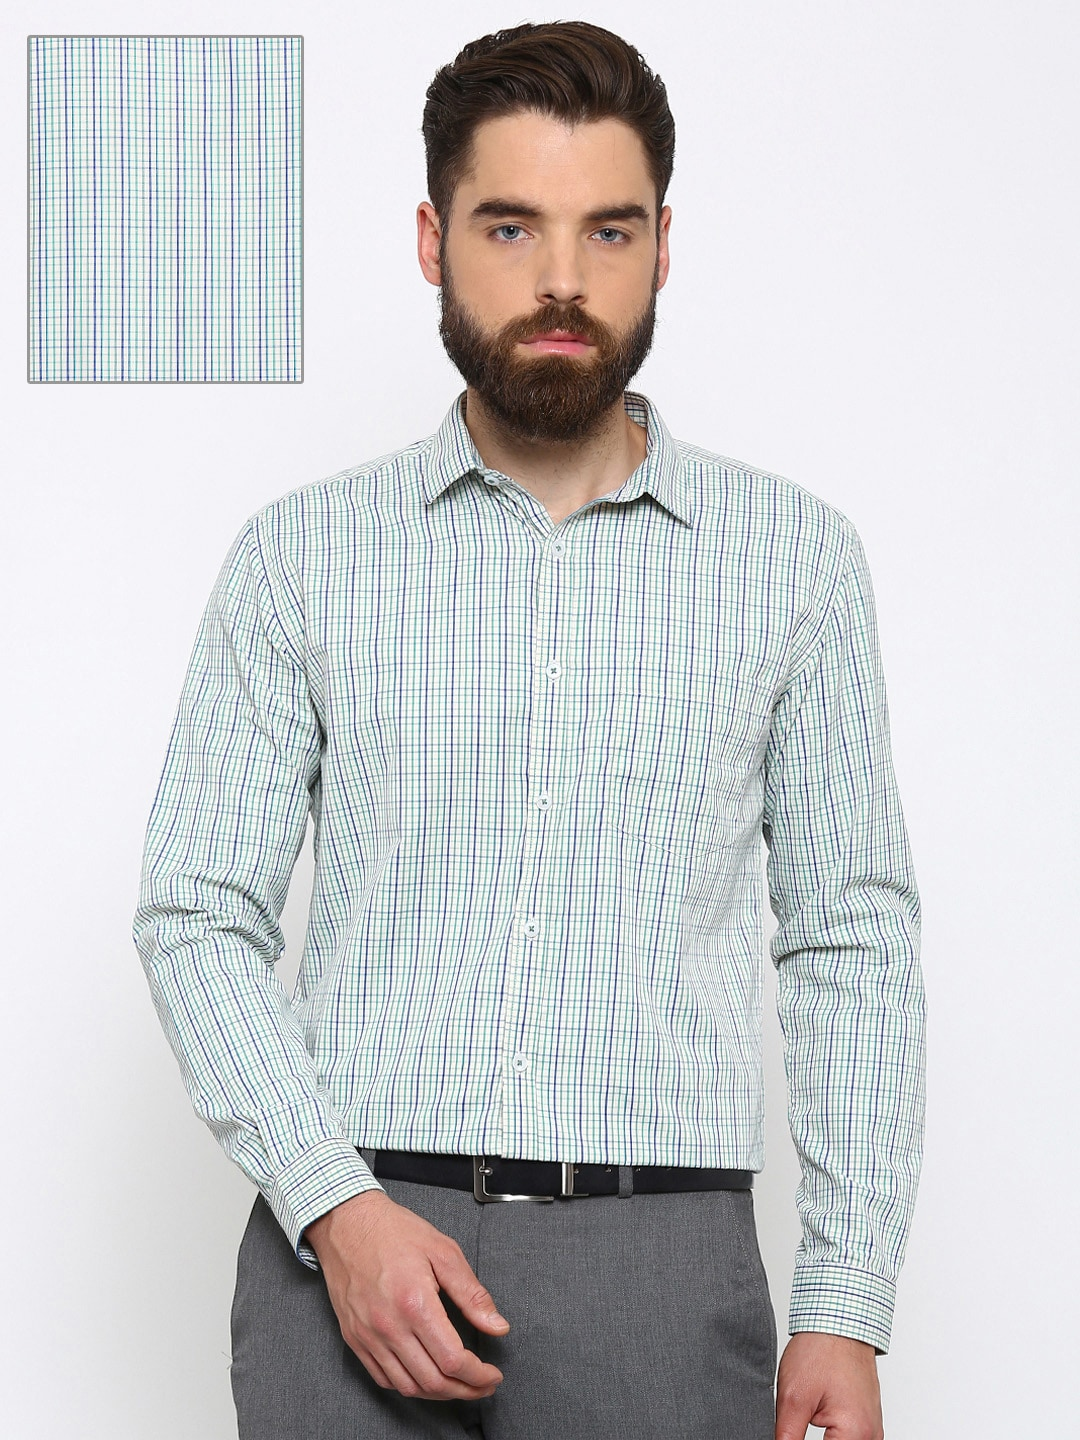 Independence Men Yellow & Green Slim Fit Checked Formal Shirt image